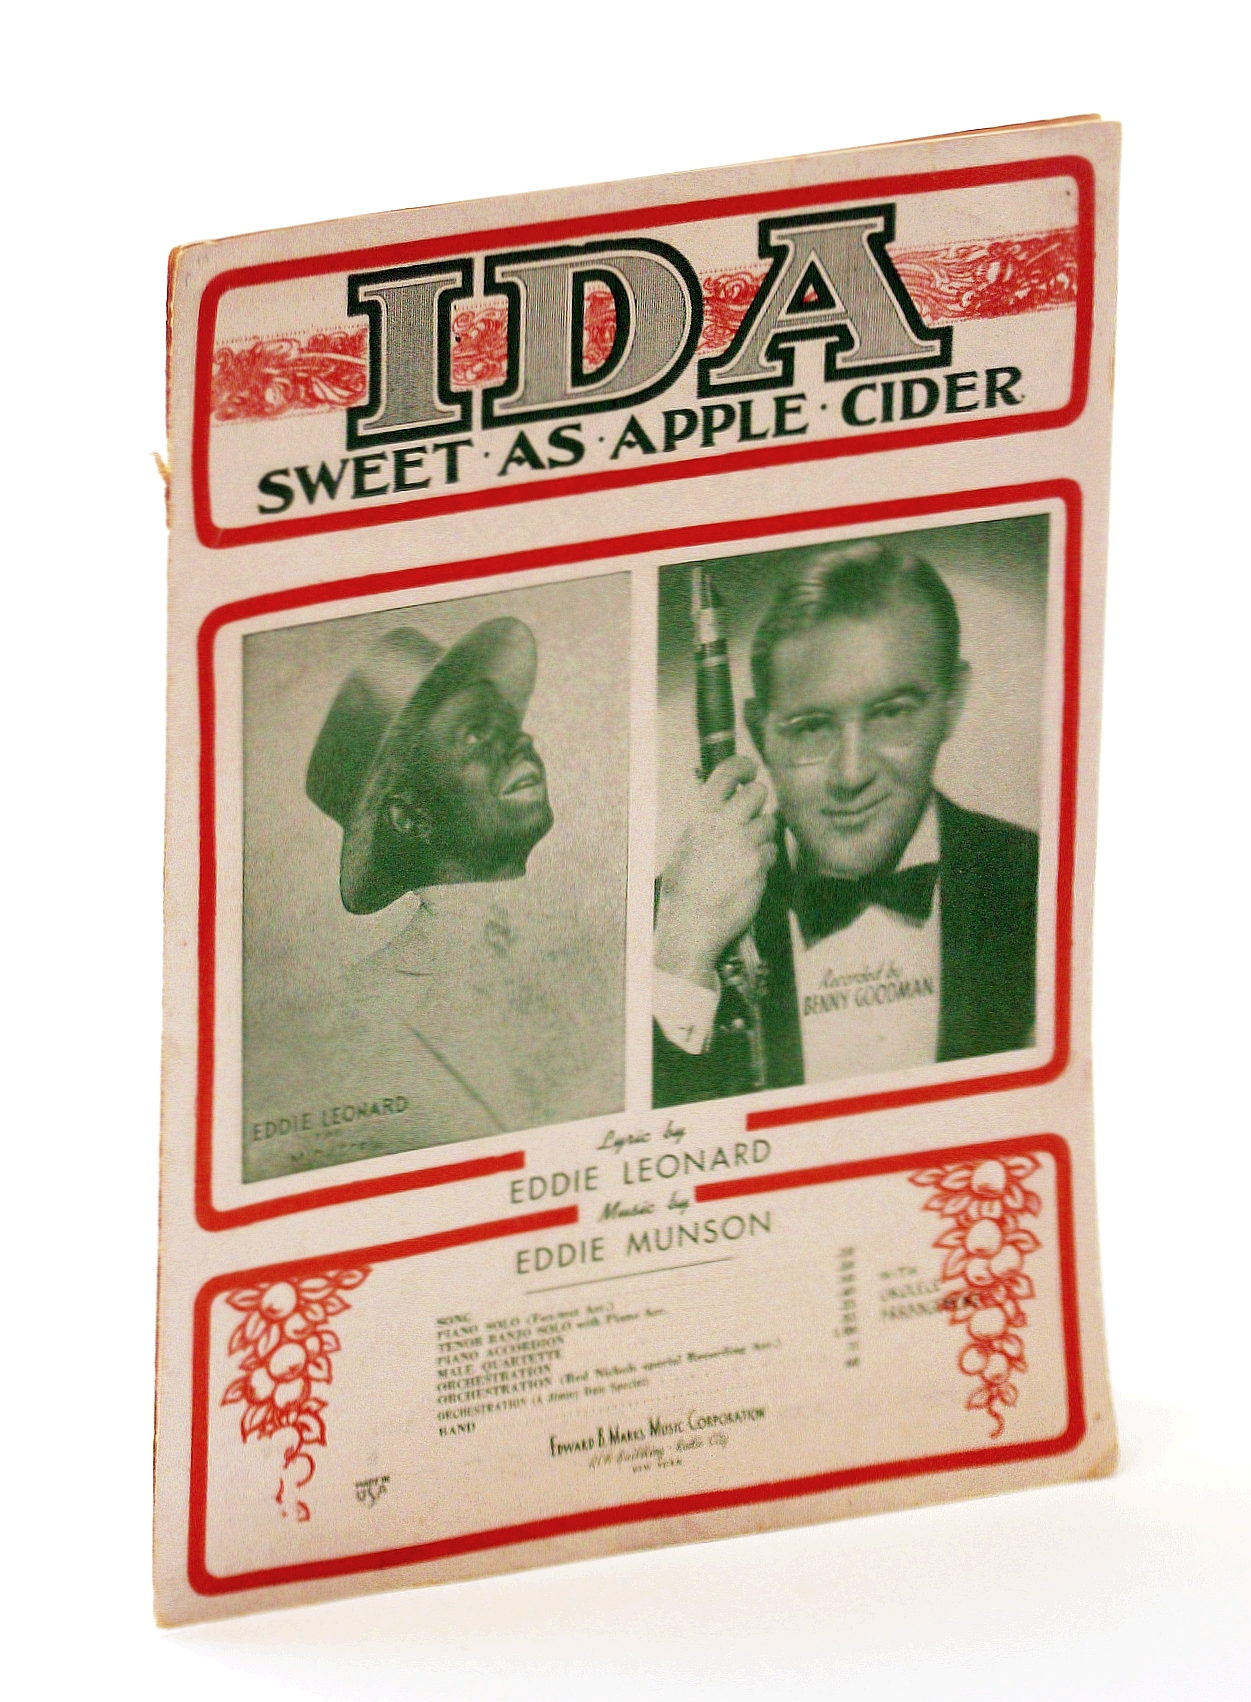 Image for Ida! Sweet as Apple Cider: Sheet Music for Voice and Piano with Ukulele Chords - Cover Photo of Eddie Leonard in Tophat and Blackface